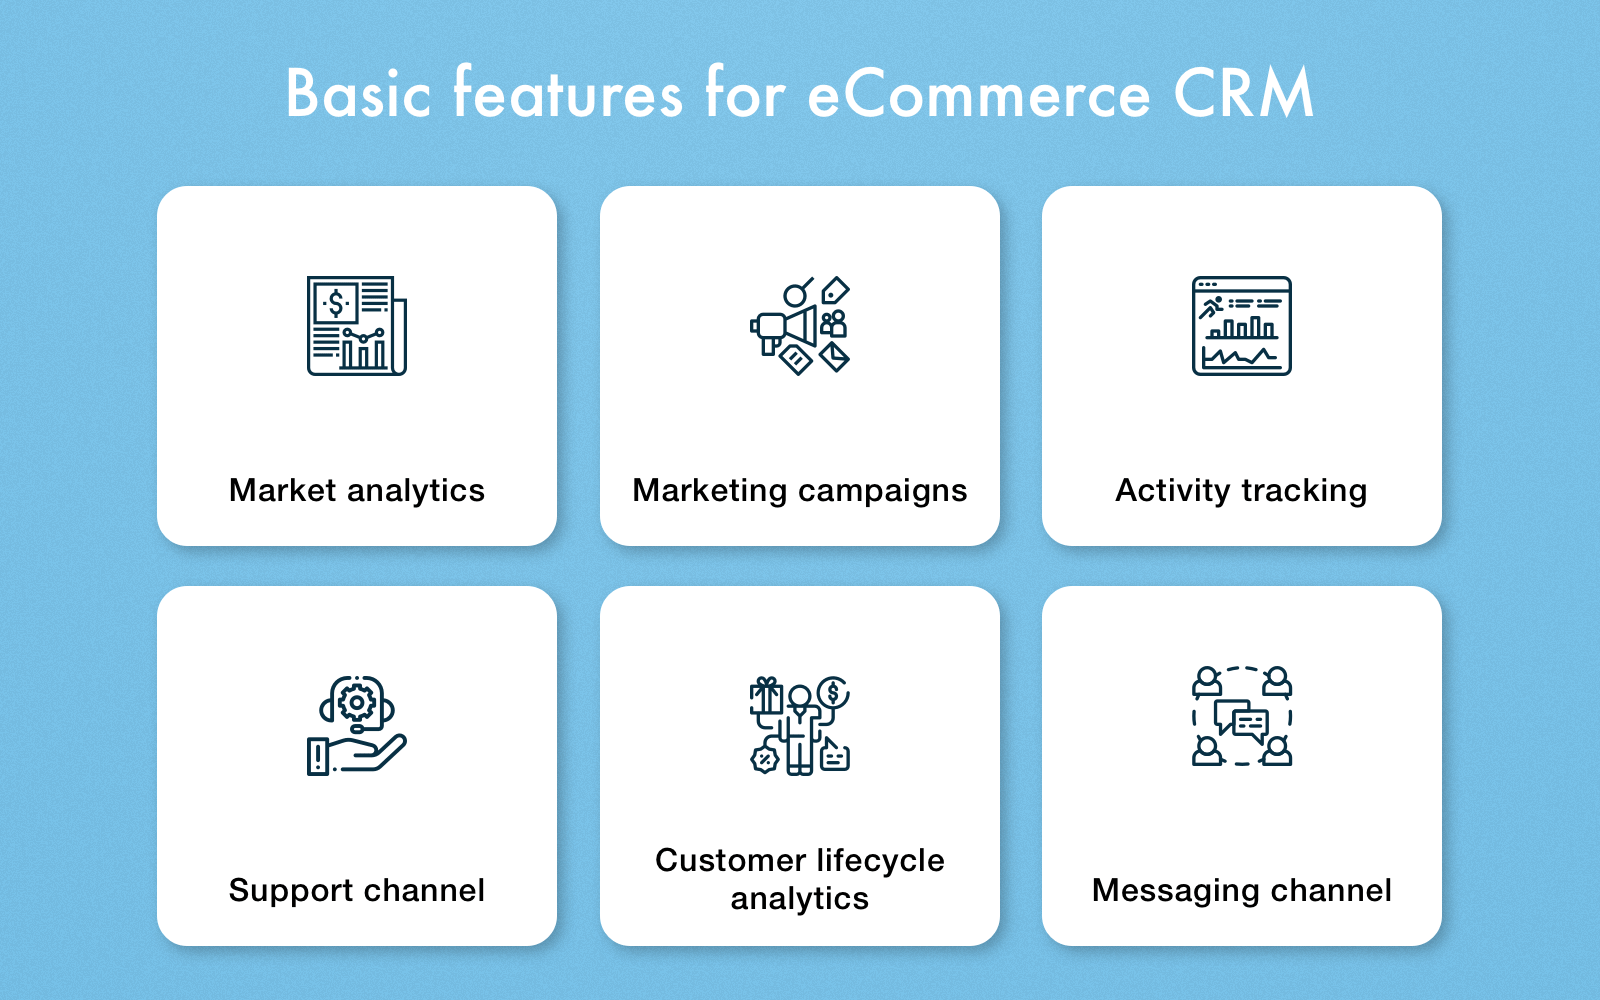 eCommerce CRM MVP features